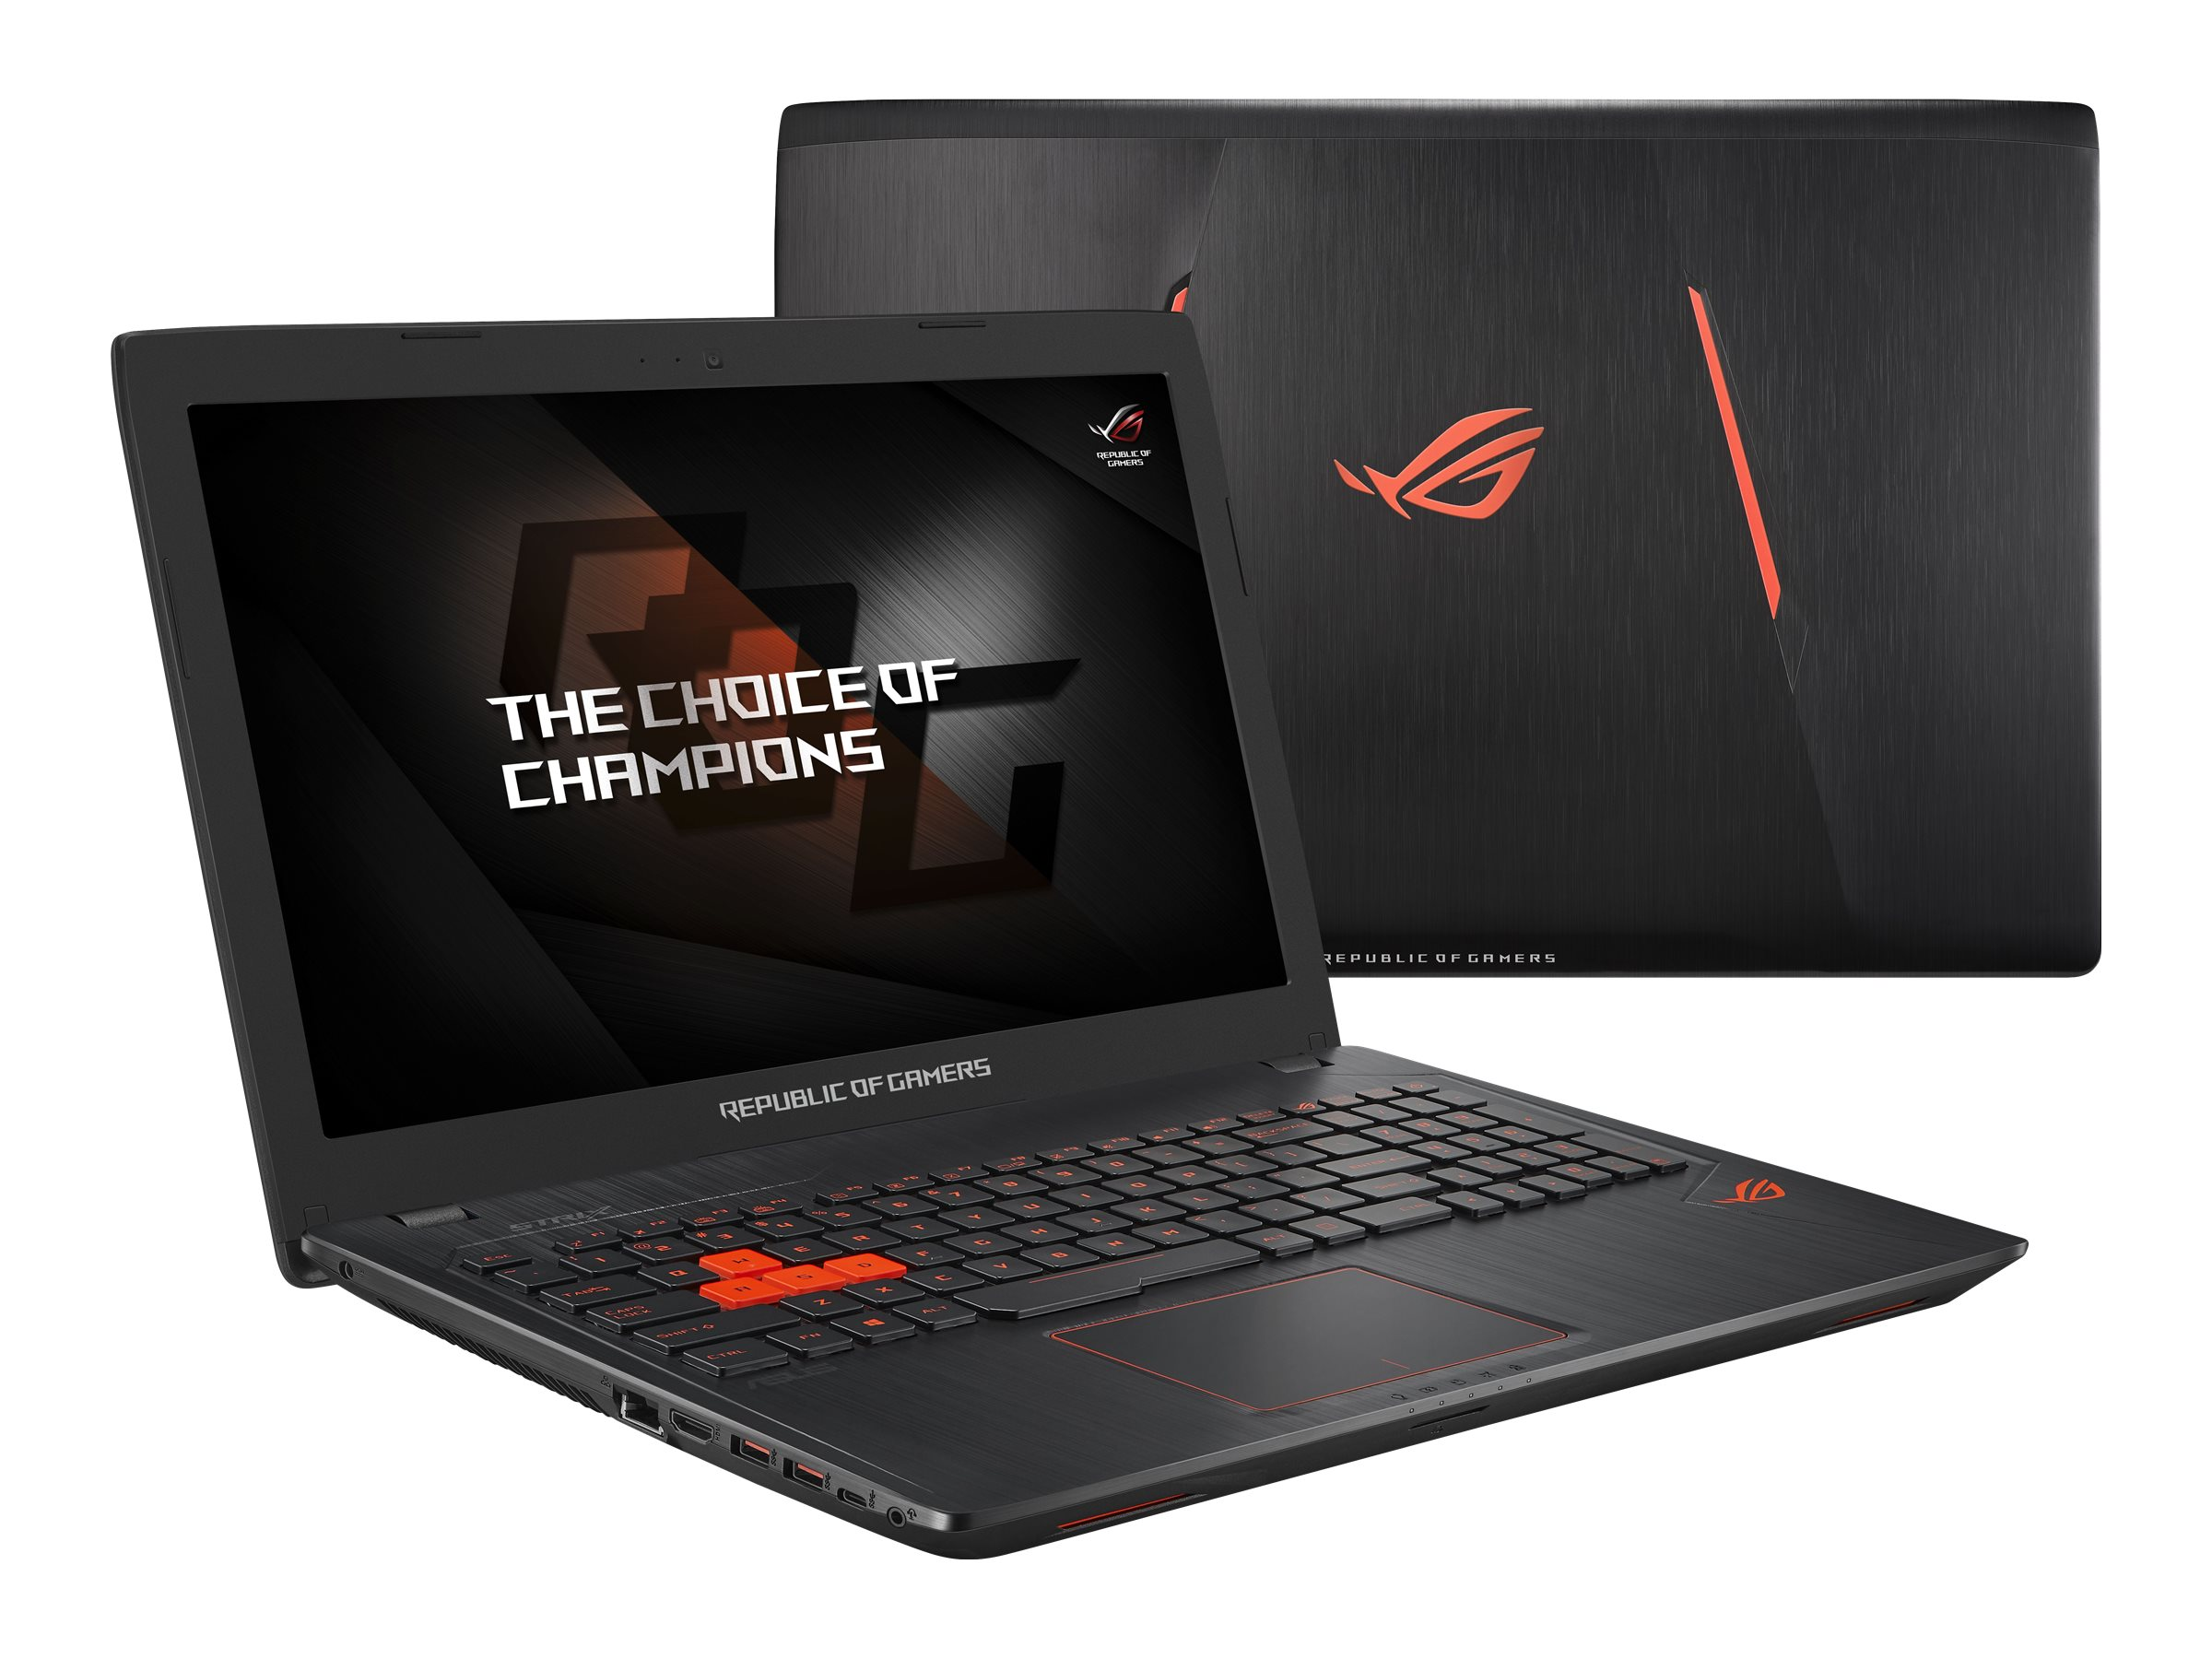 gaming performance and great design make it a good value gaming laptop